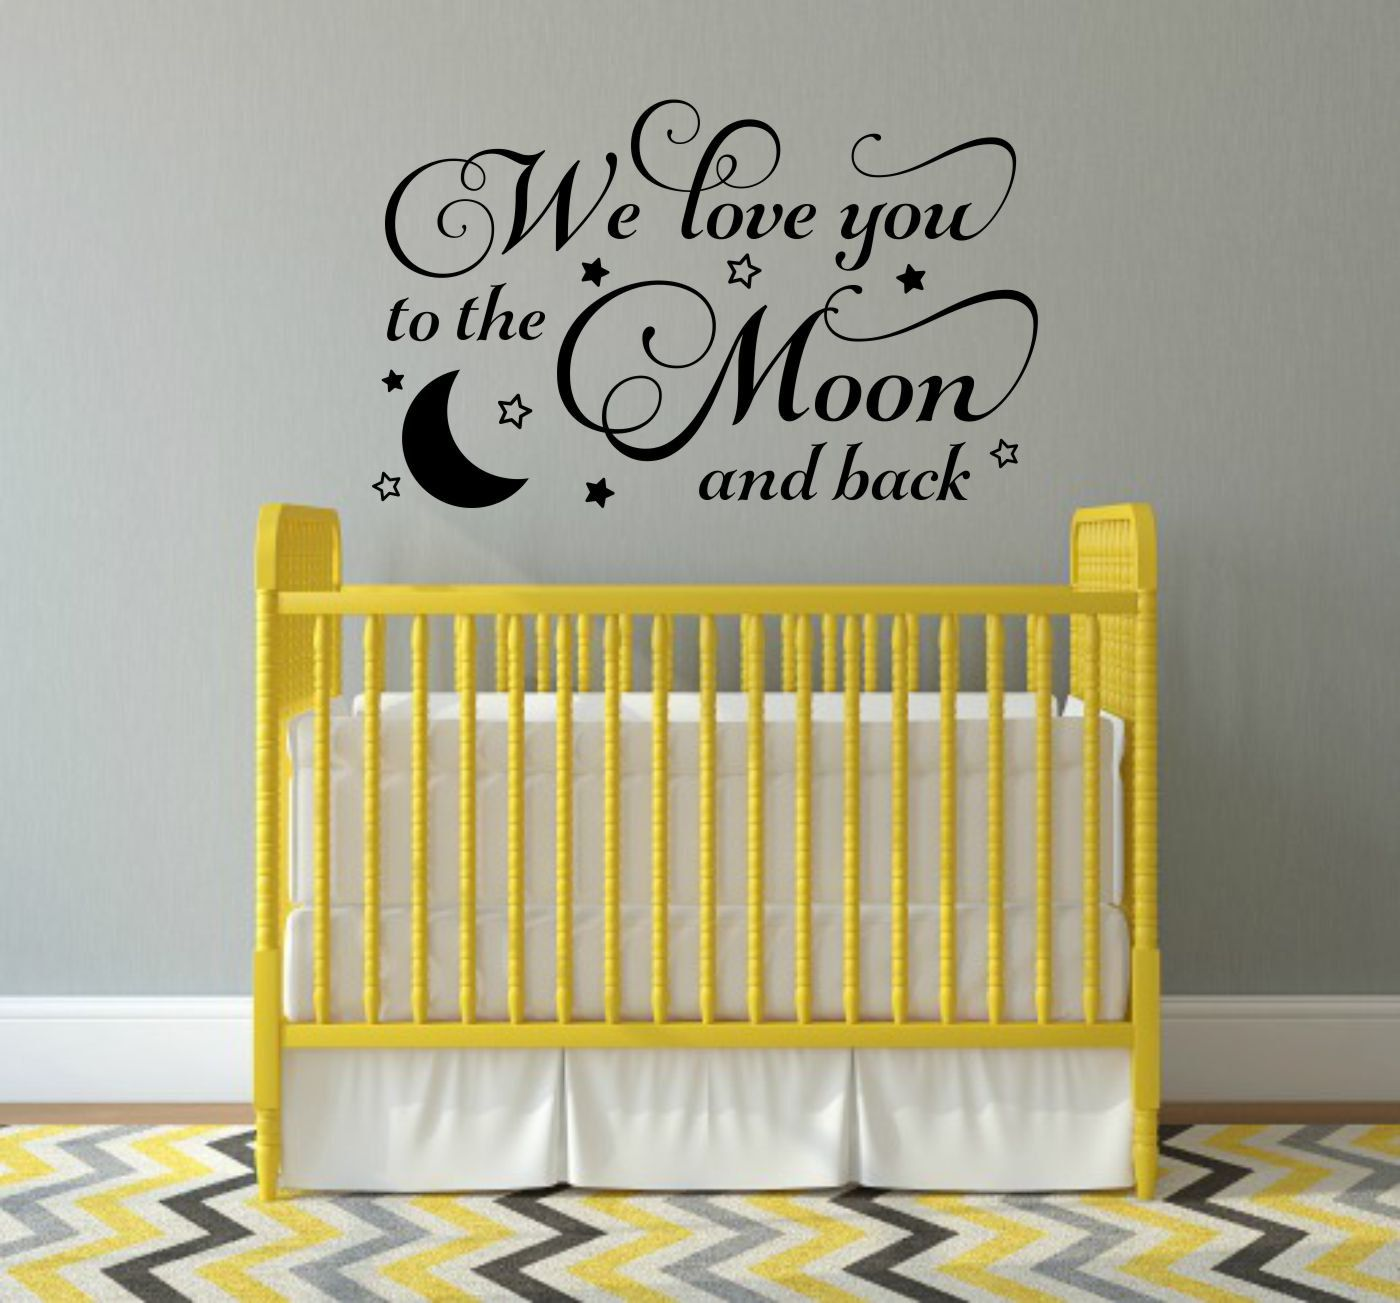 We Love You To The Moon And Back Decal Nursery Wall Decal Moon And ...